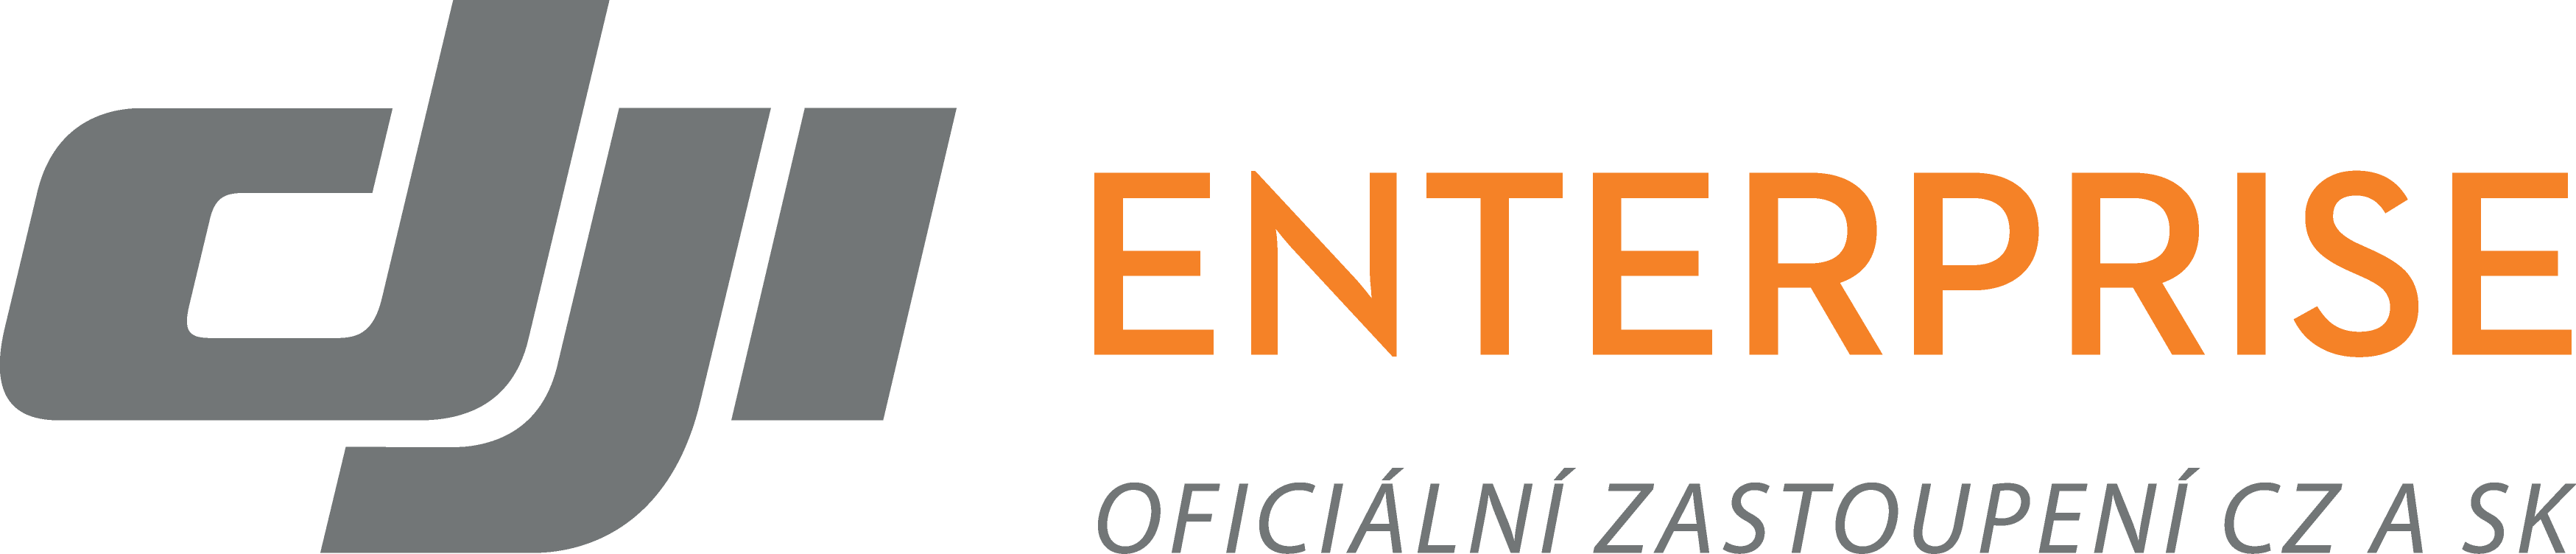 DJI_logo_enterprise